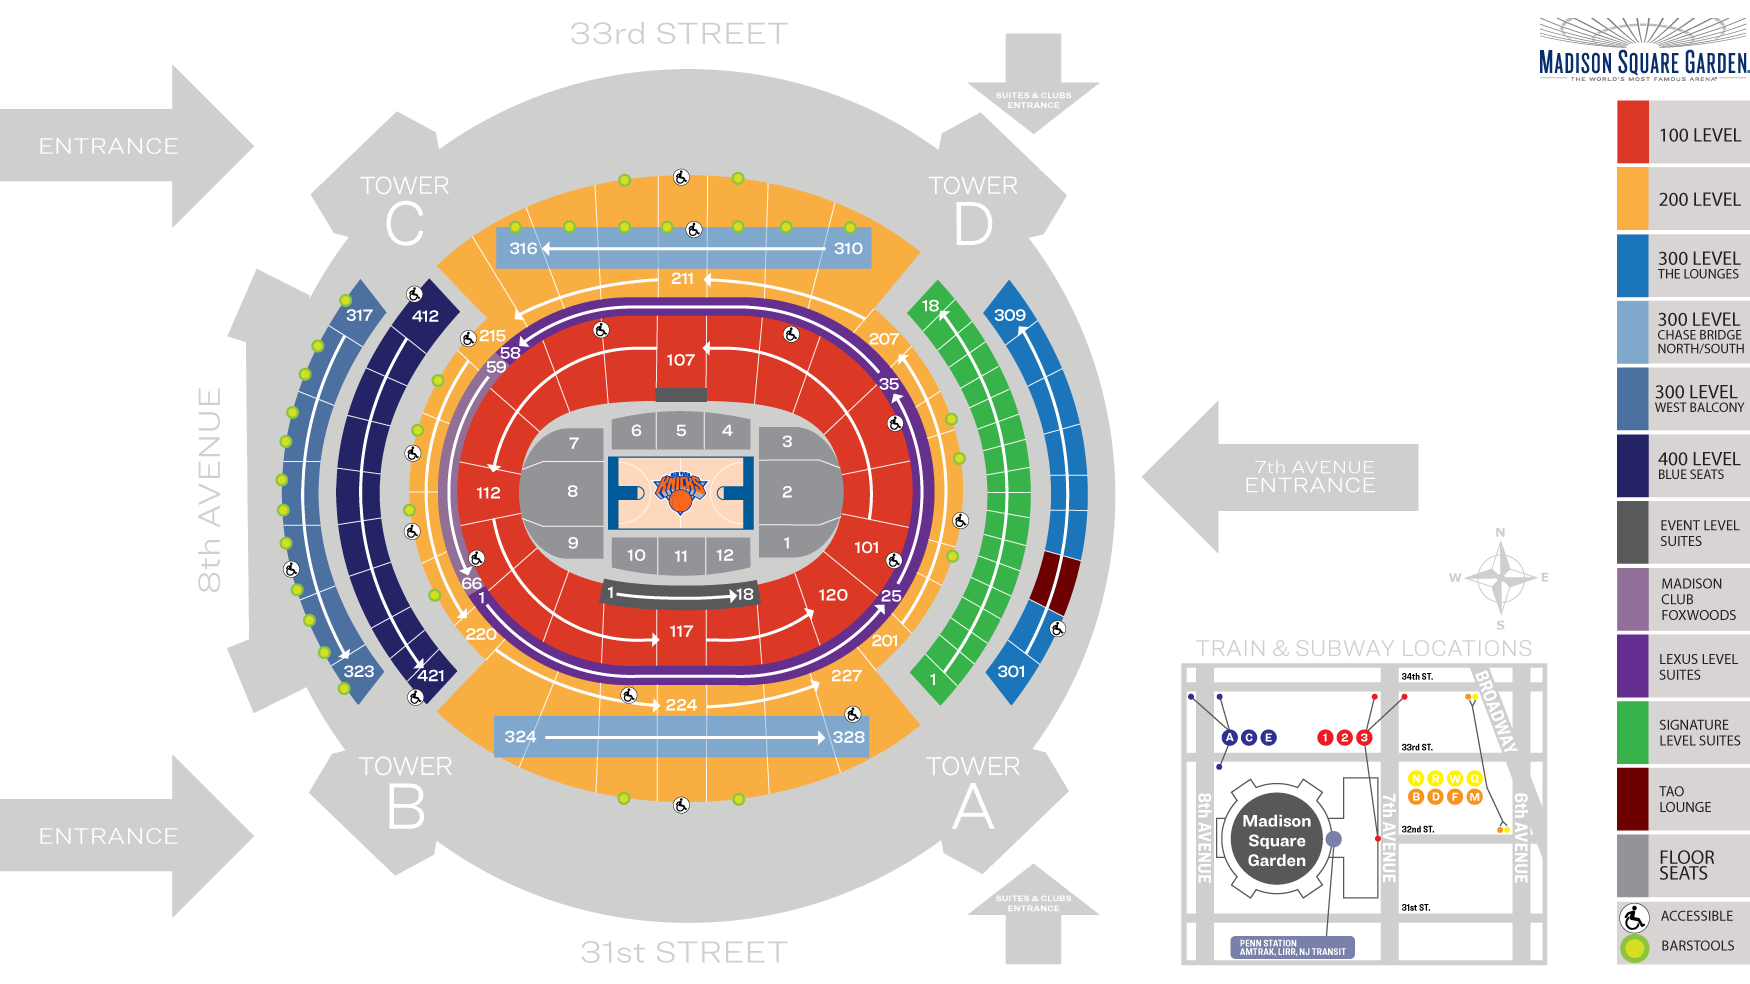 2094c5310522b7ab2f8955ad040c8b11 - How Many Seats In Madison Square Gardens